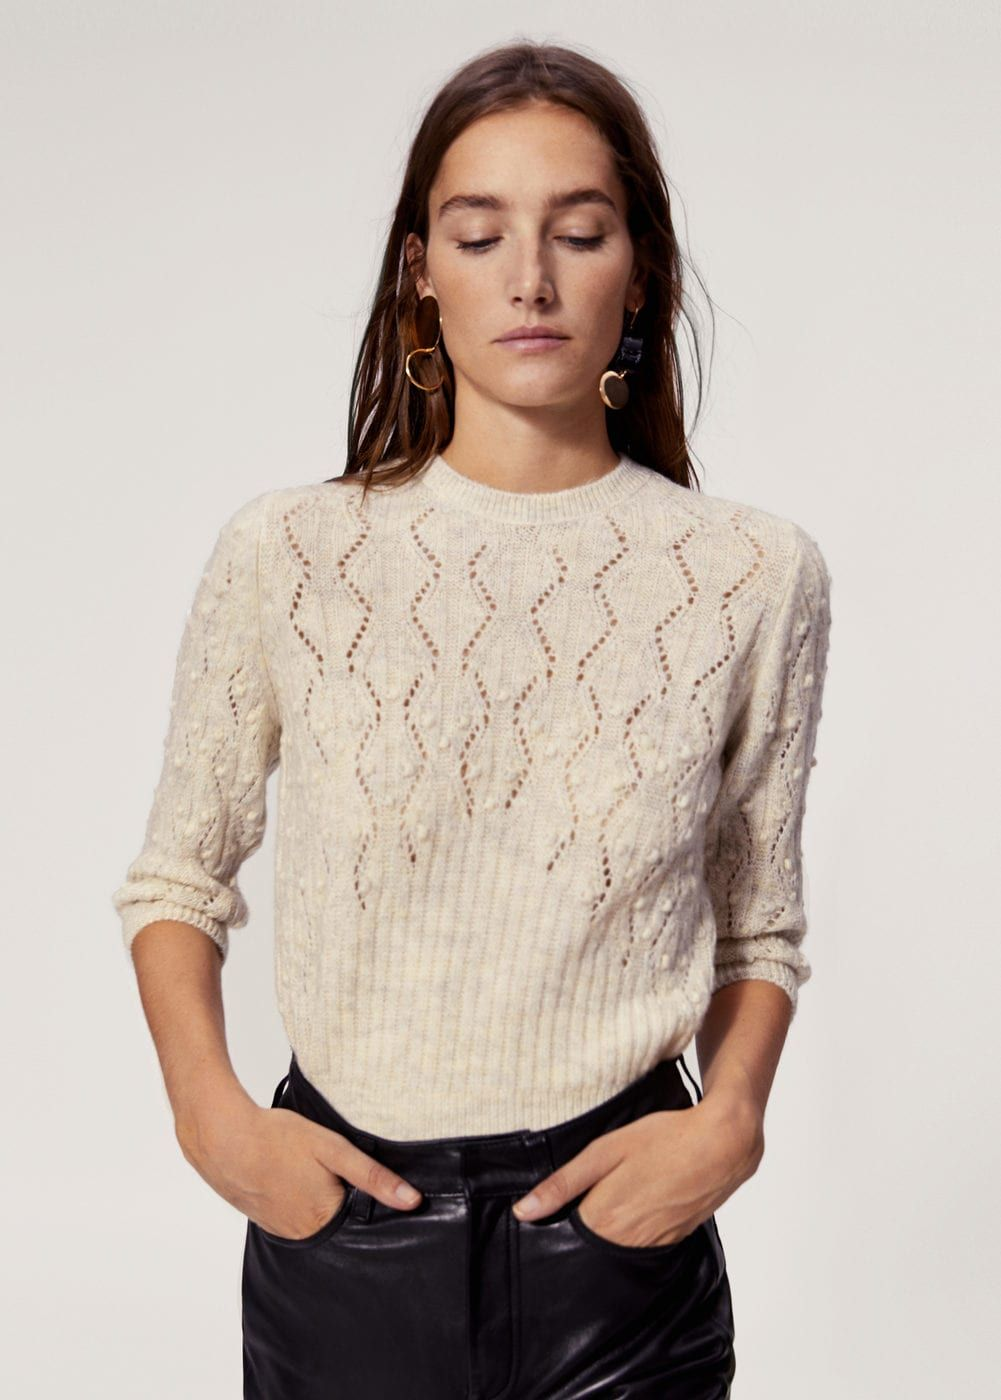 Openwork Cable WomenStyle Pinterest Sweater Knit Shop MVUpqSGz